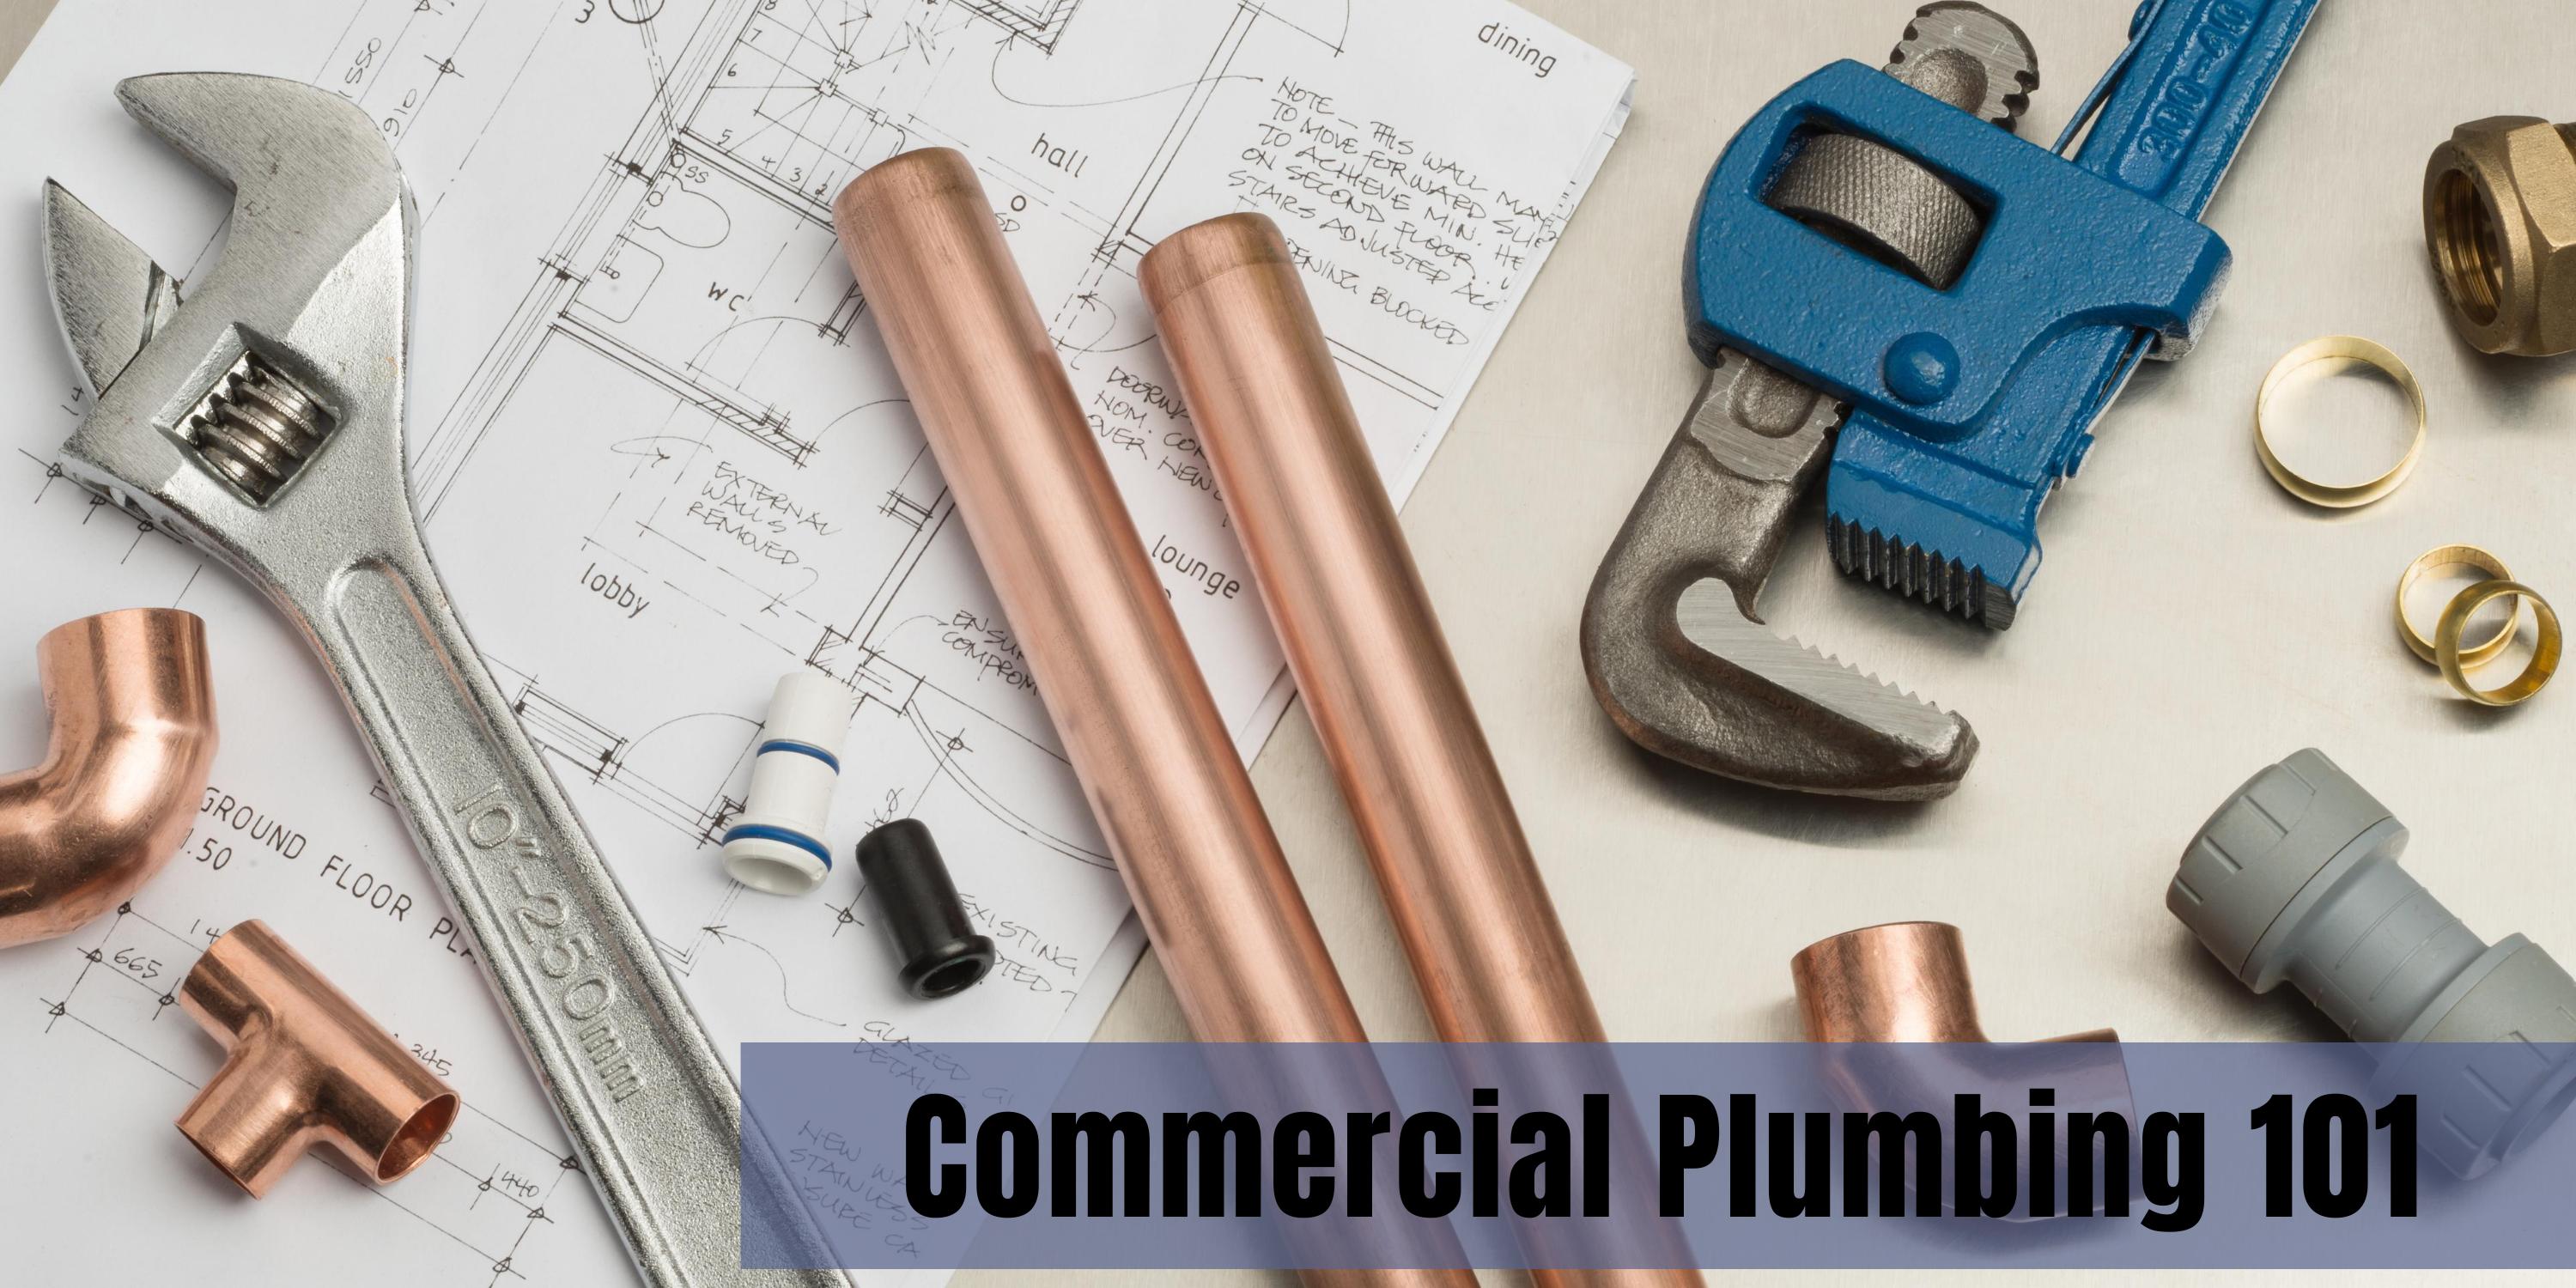 Commercial plumbing tools for commercial plumbing 101 questions